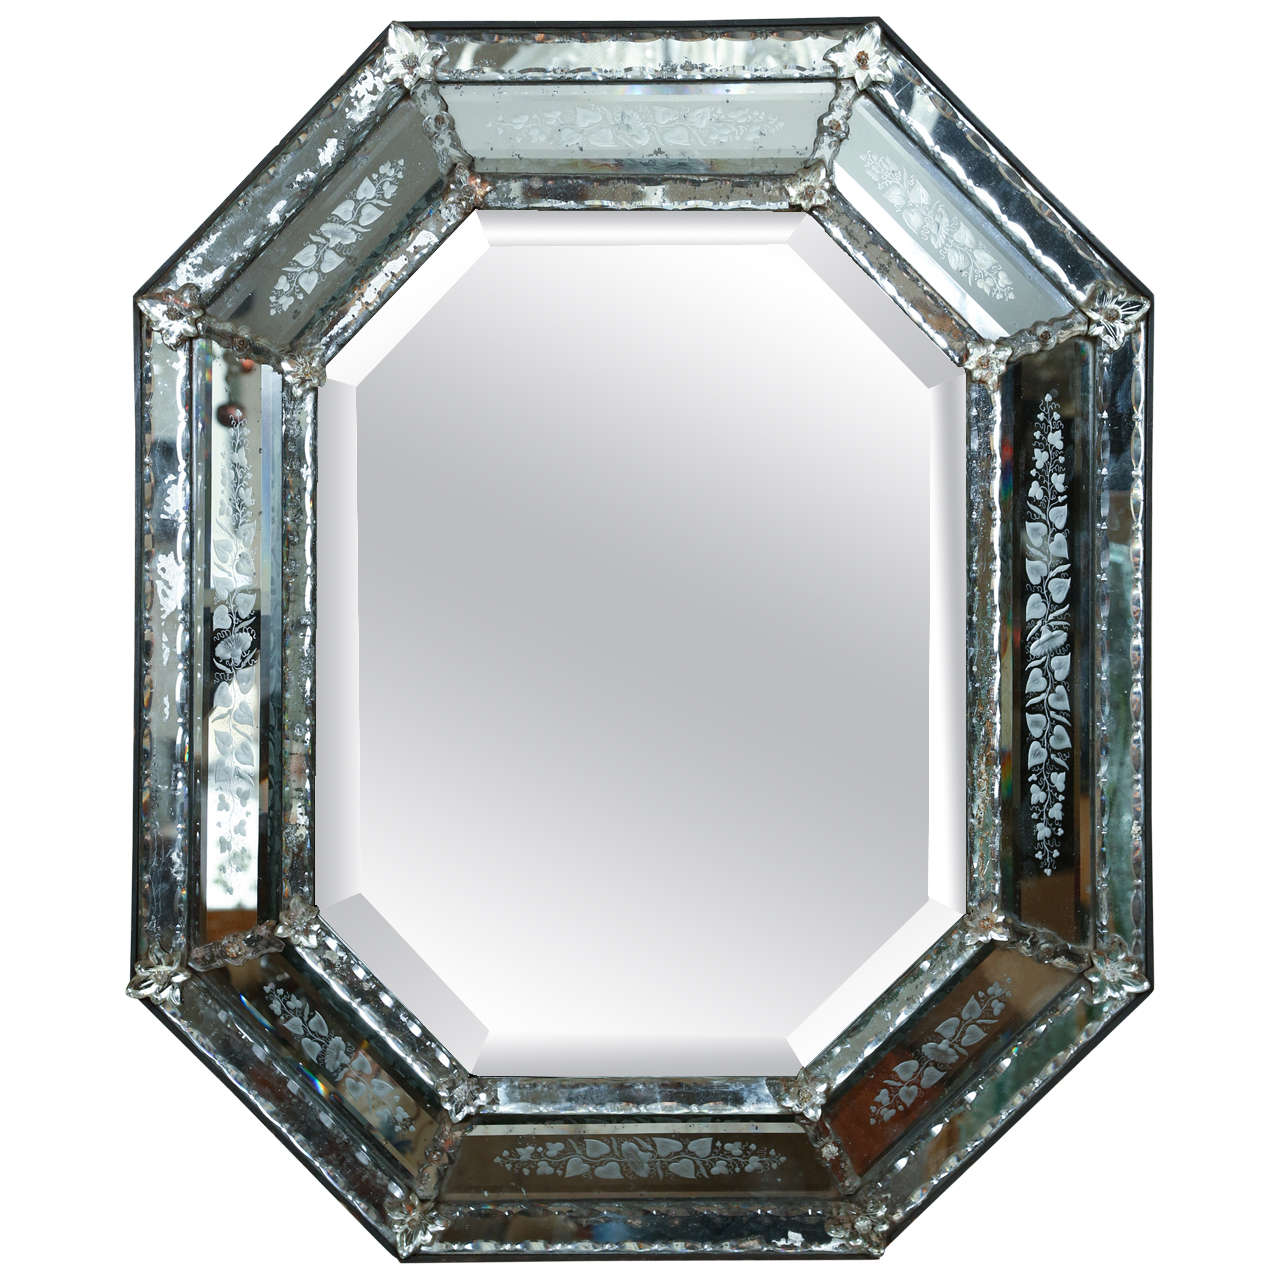 Venetian Mirror With Mercury Glass Etched Frame Circa 1840 At 1stdibs